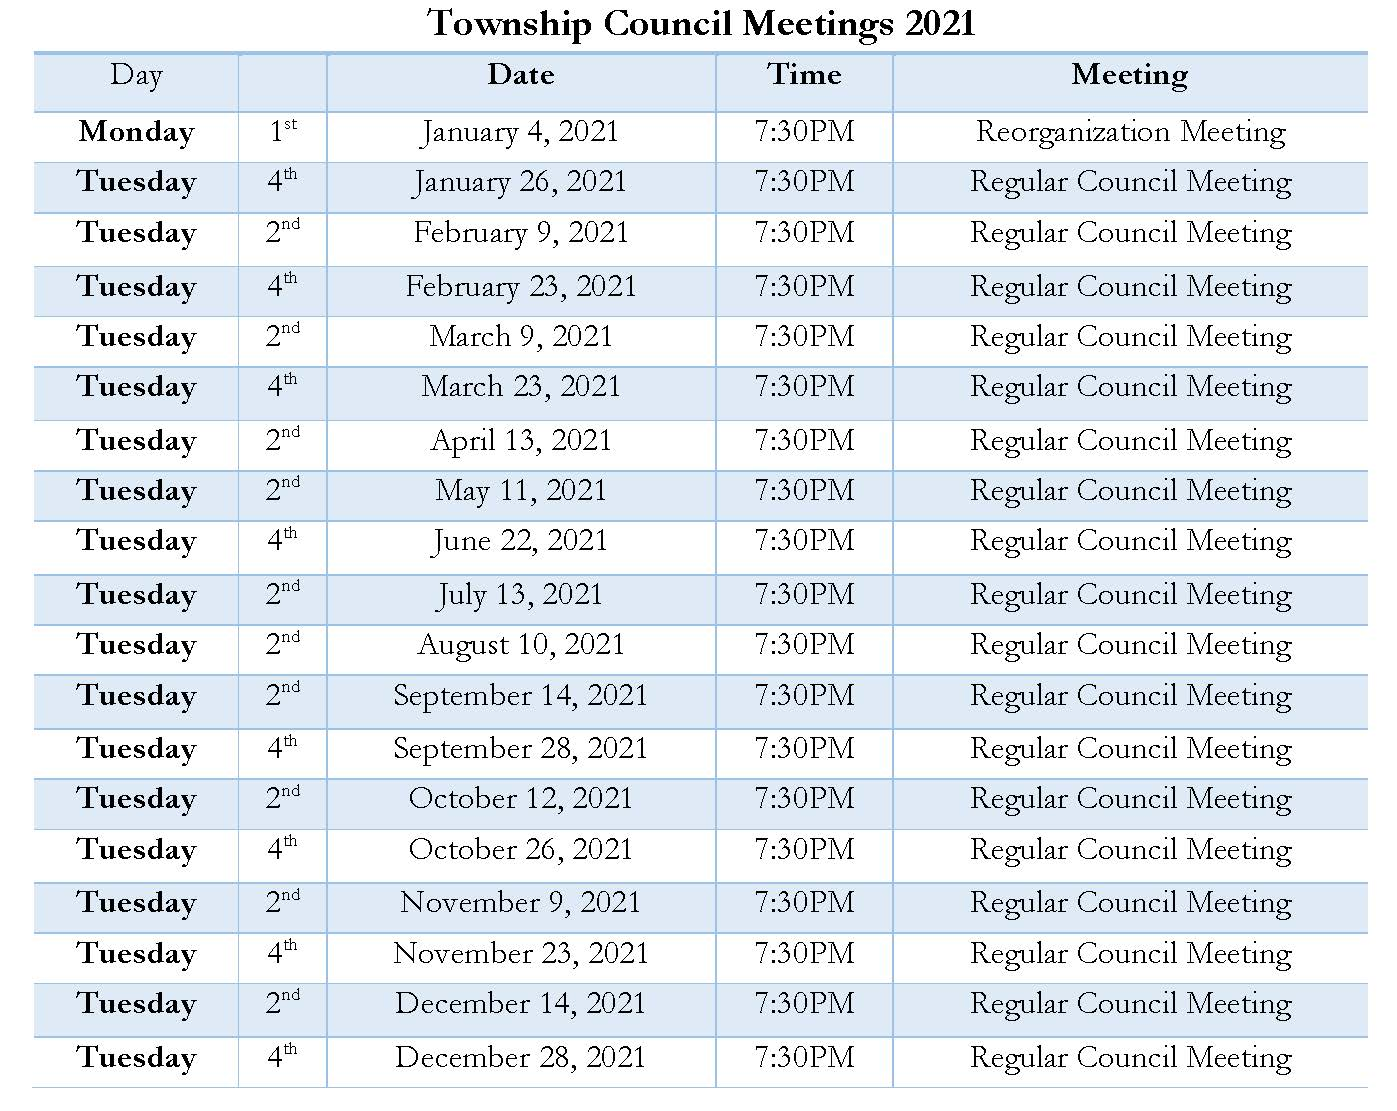 2021 Township Council Meeting schedule